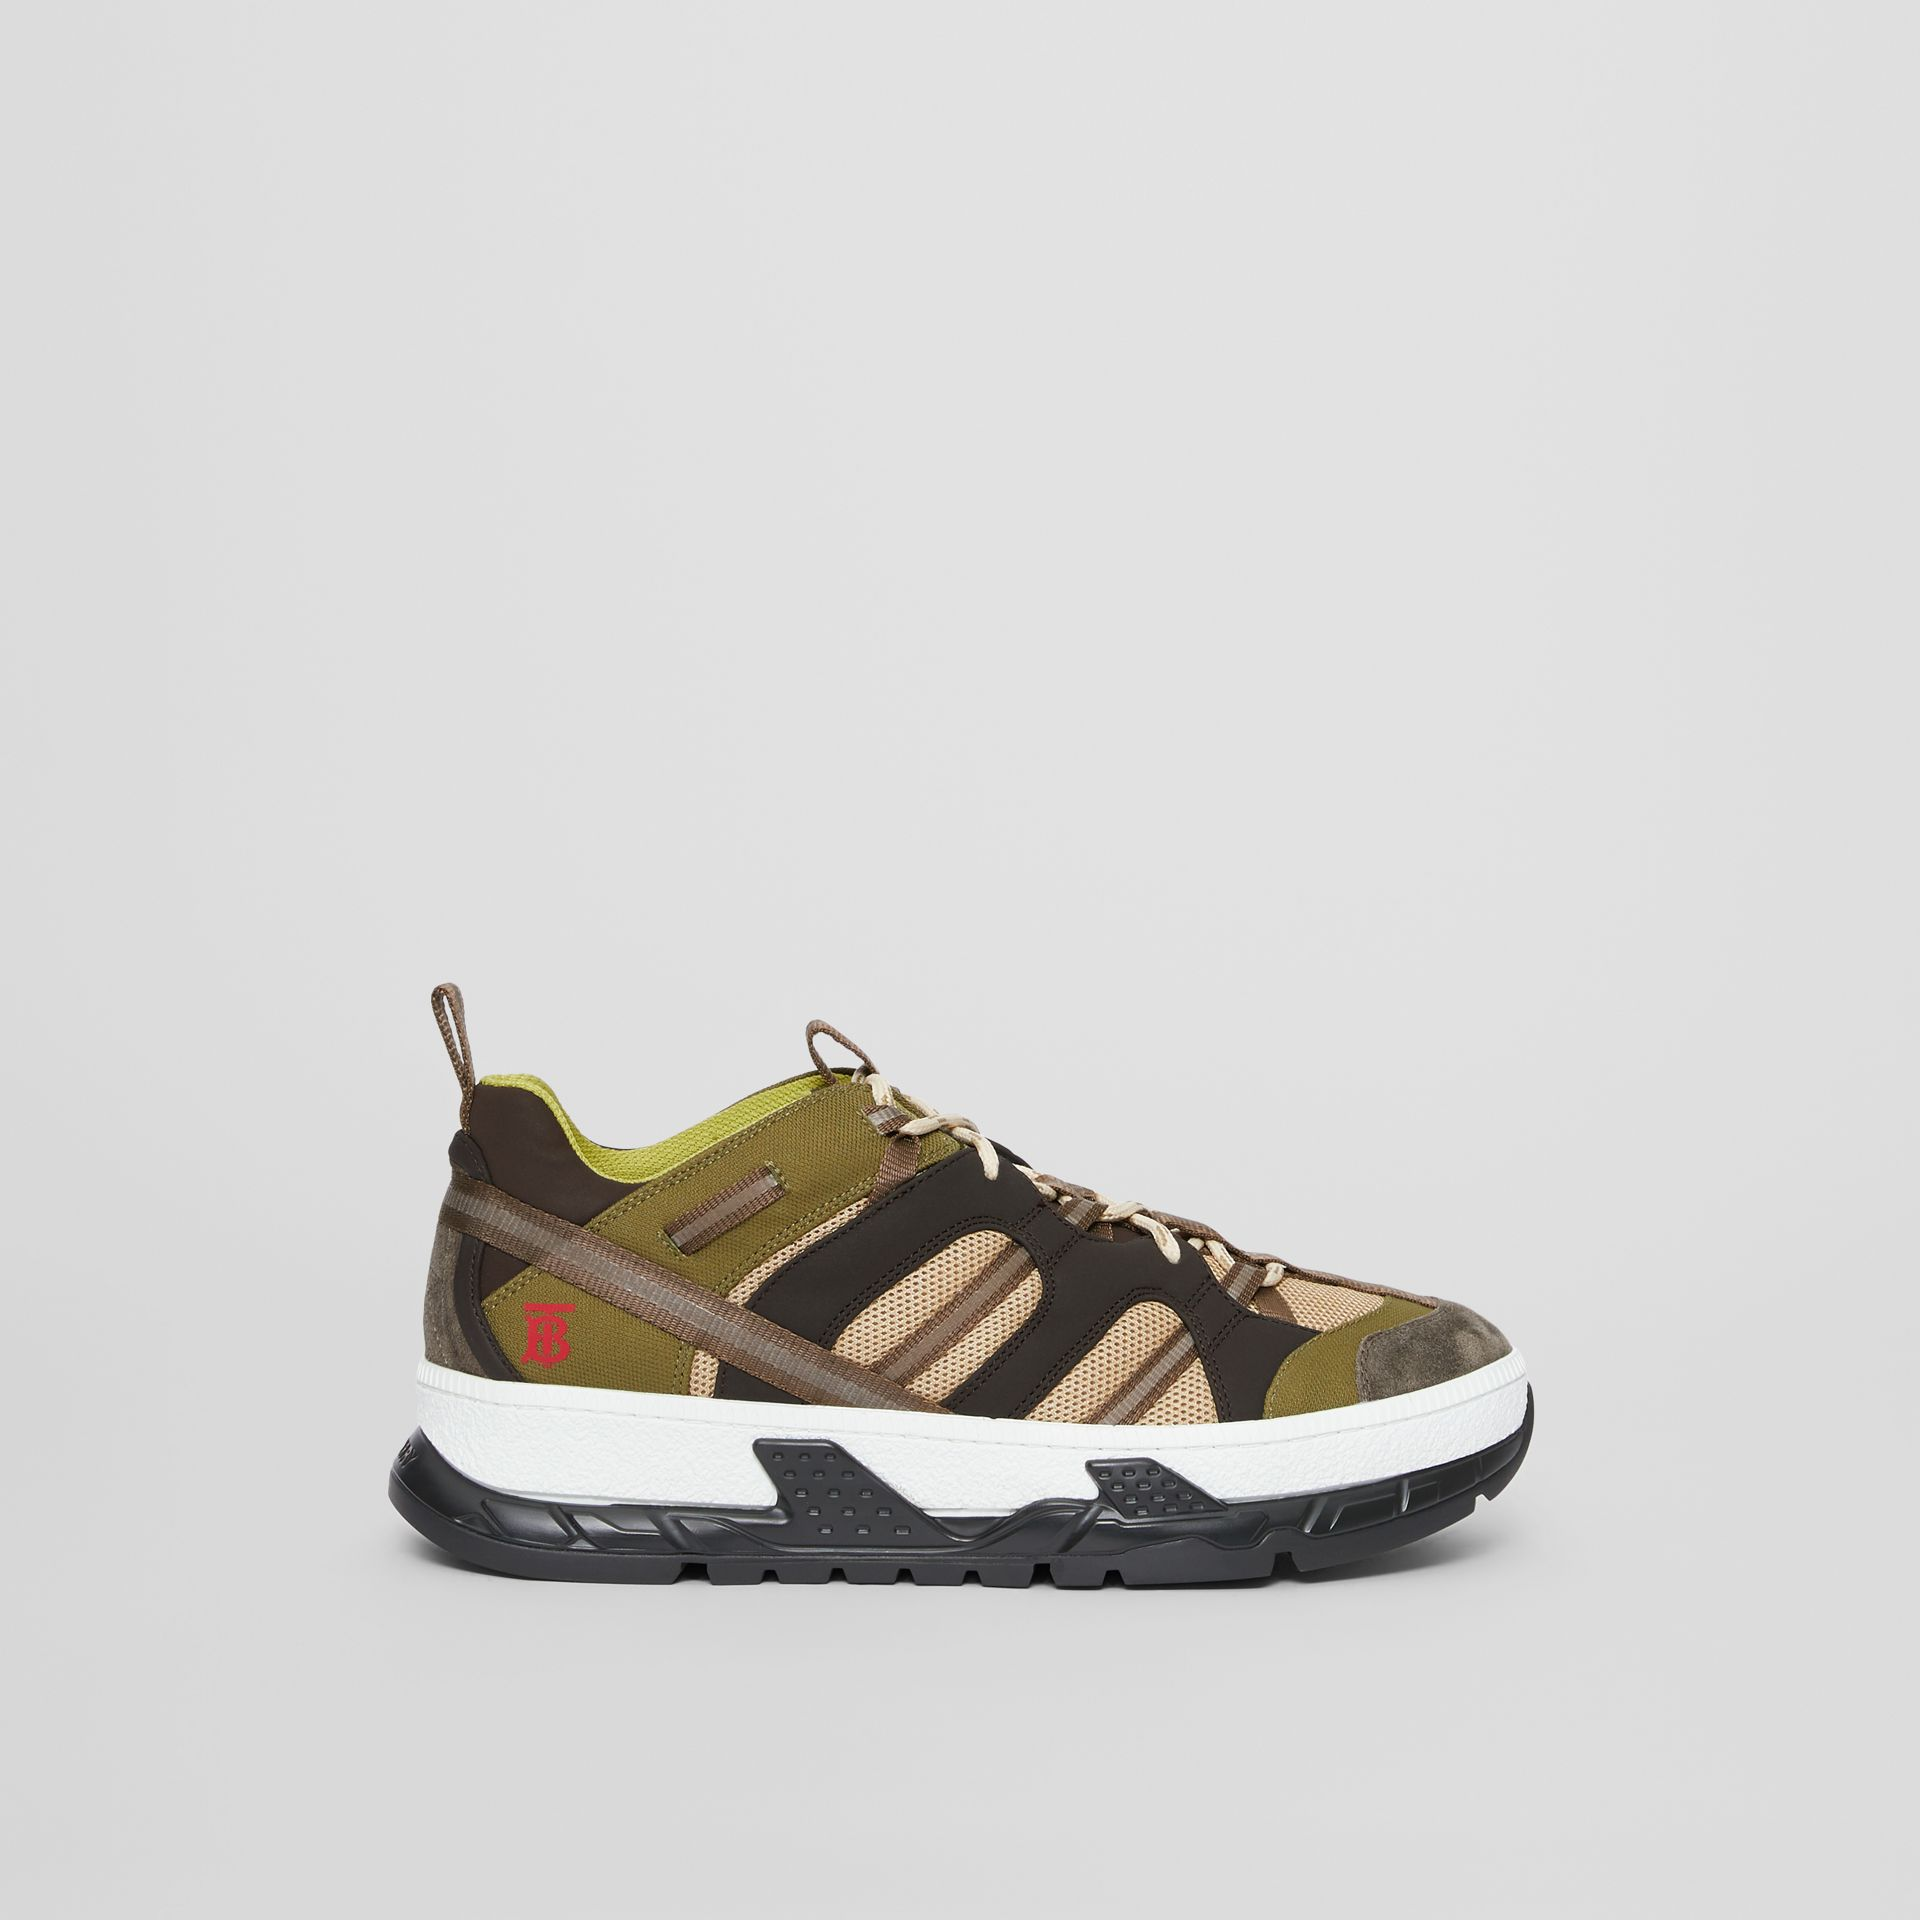 Mesh and Suede Union Sneakers in Khaki / Brown - Men | Burberry Australia - gallery image 4